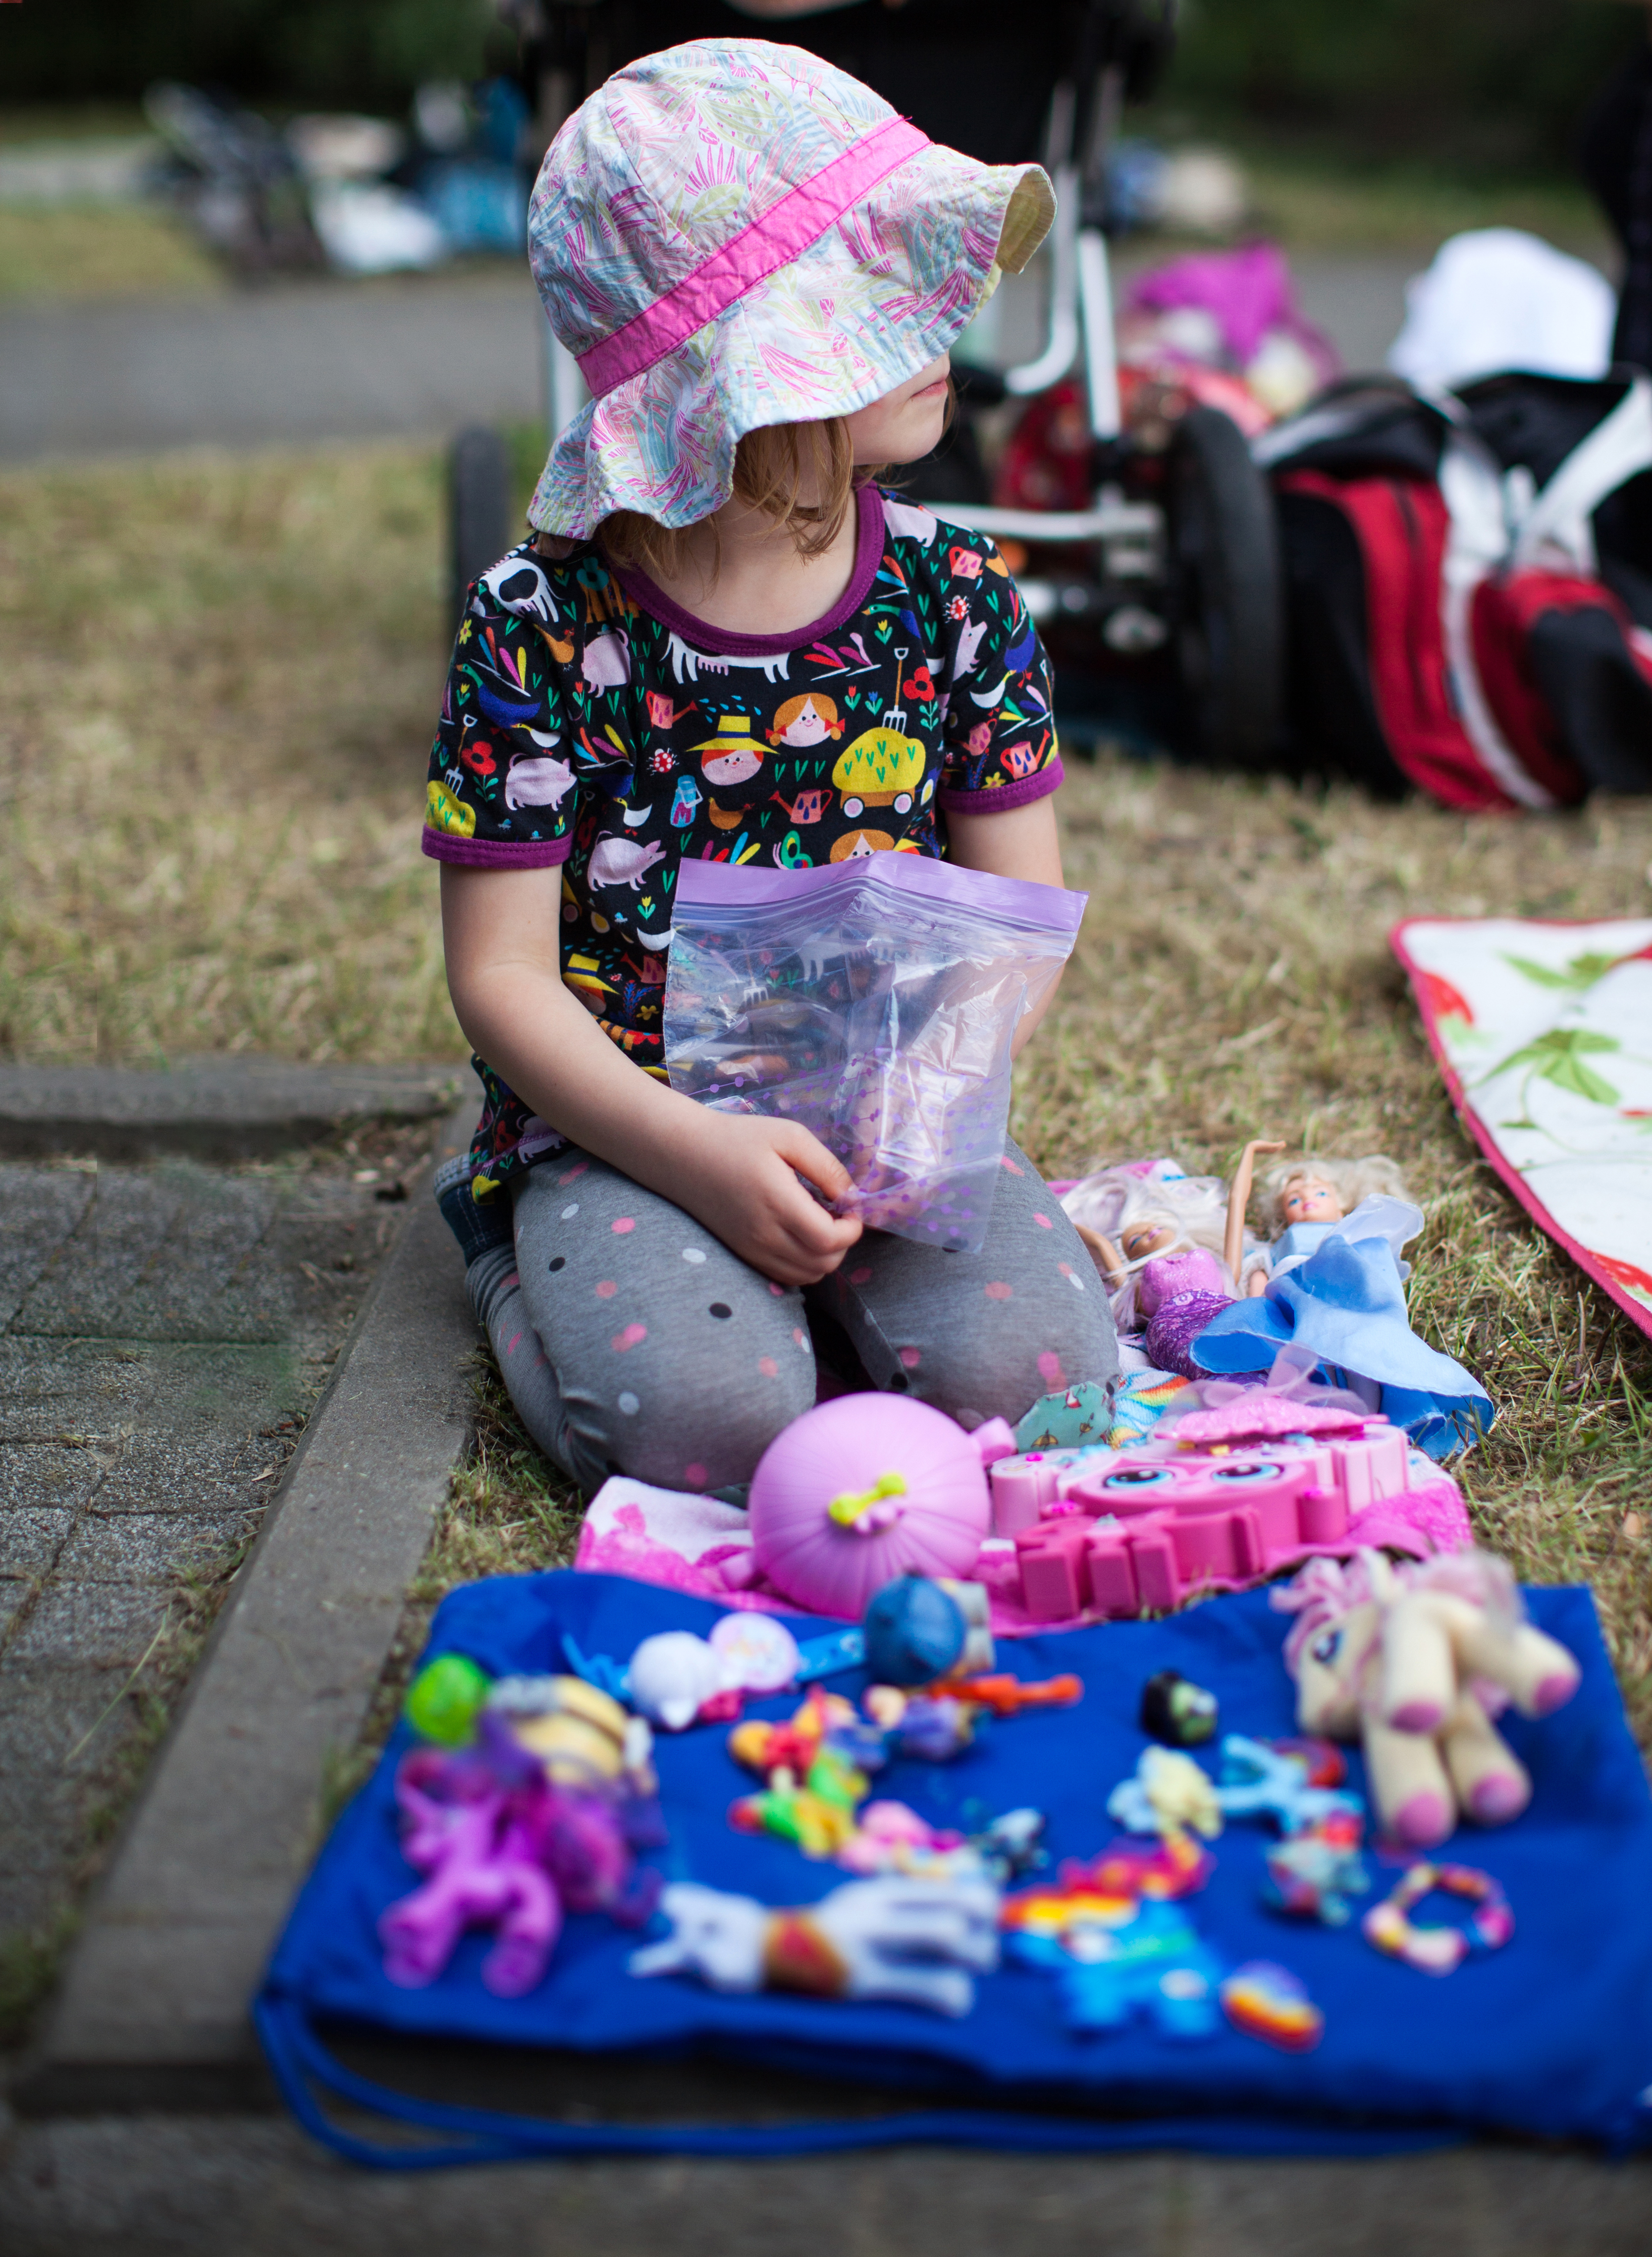 Child sitting in front of a blanket with toys arranged for a garage sale.